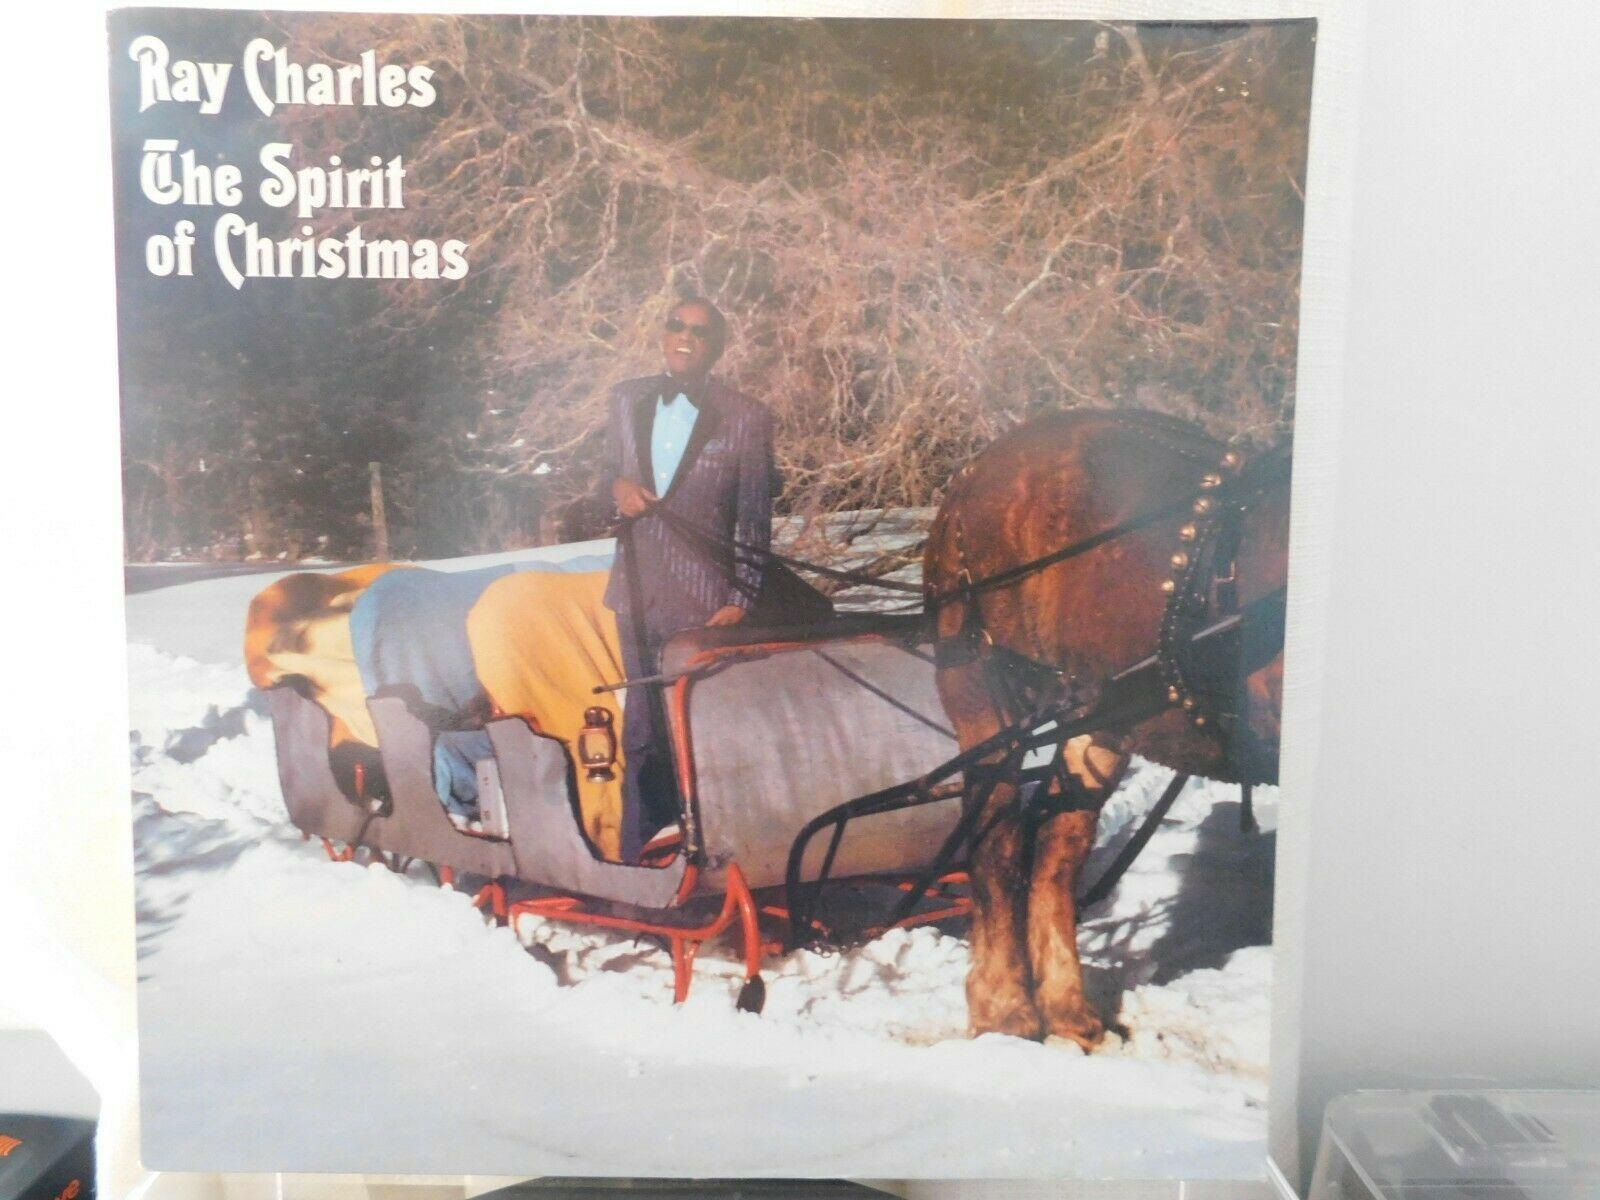 RAY CHARLES, THE SPIRIT OF CHRISTMAS. ORIGINAL VINYL LP, DEMO COPY, EXCELLENT